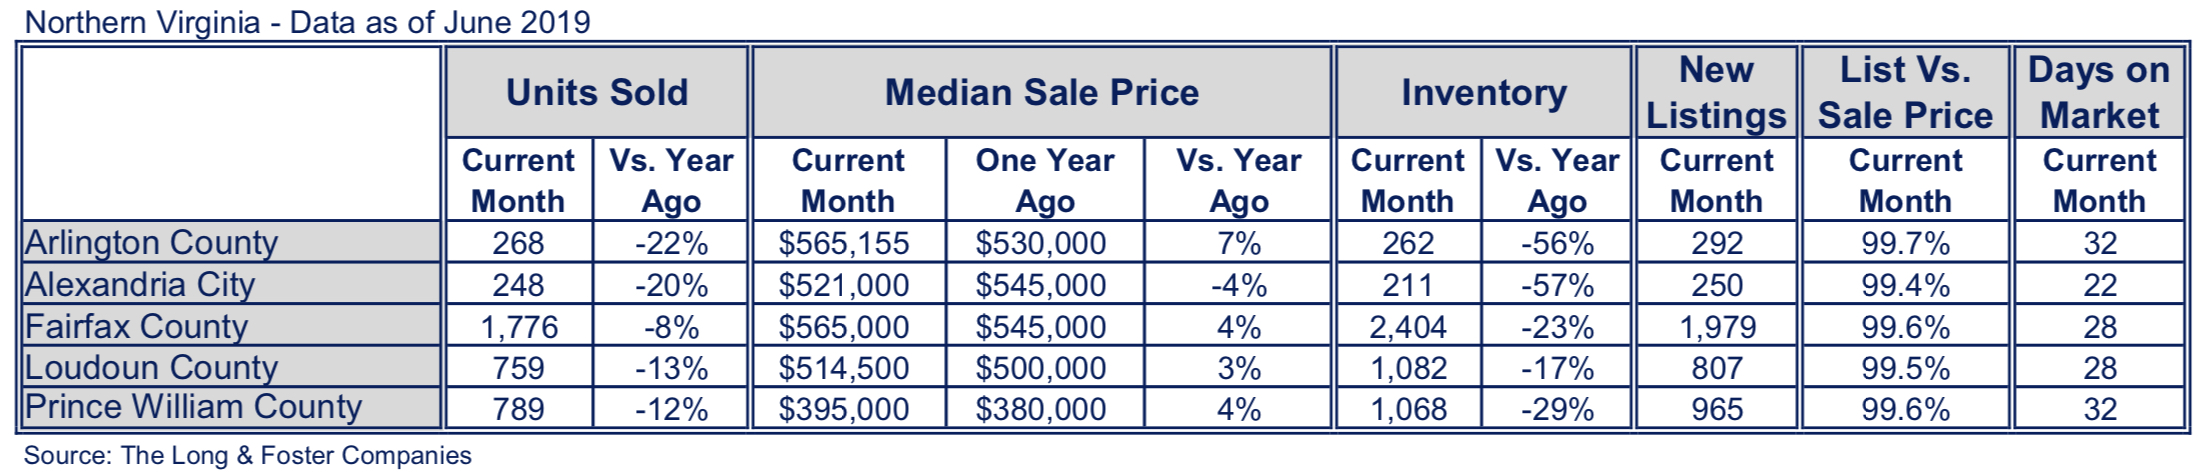 Northern Virginia Market Minute Chart June 2019